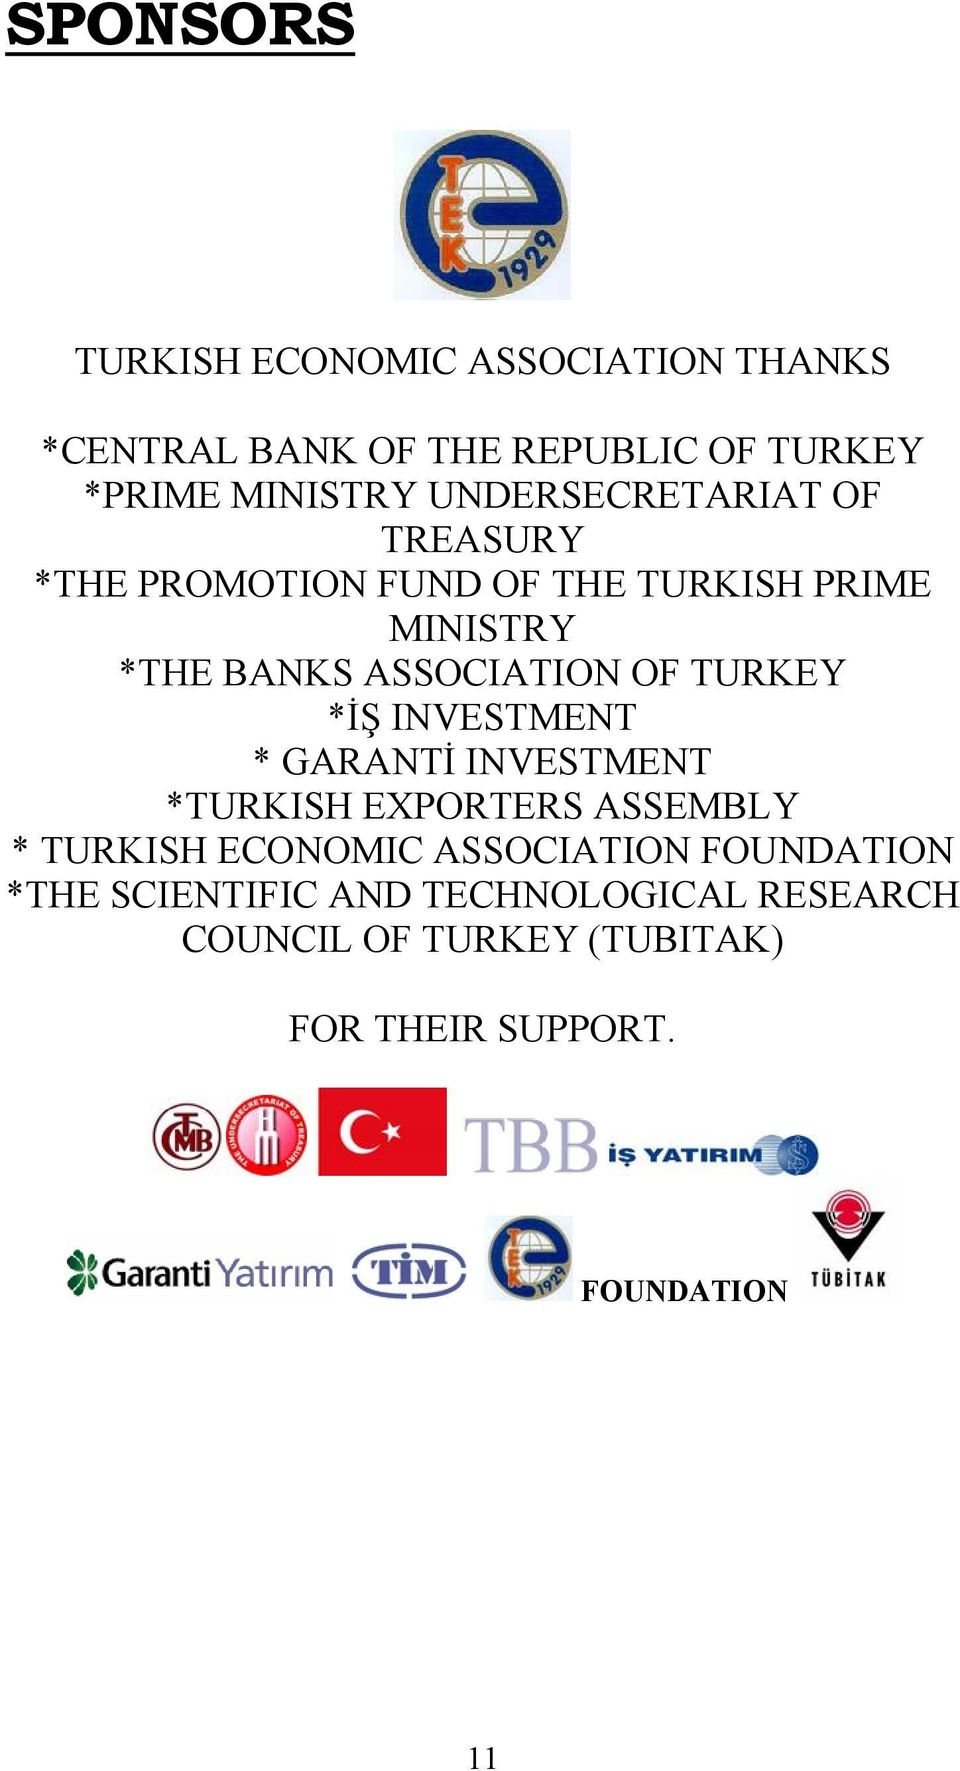 TURKEY *İŞ INVESTMENT * GARANTİ INVESTMENT *TURKISH EXPORTERS ASSEMBLY * TURKISH ECONOMIC ASSOCIATION